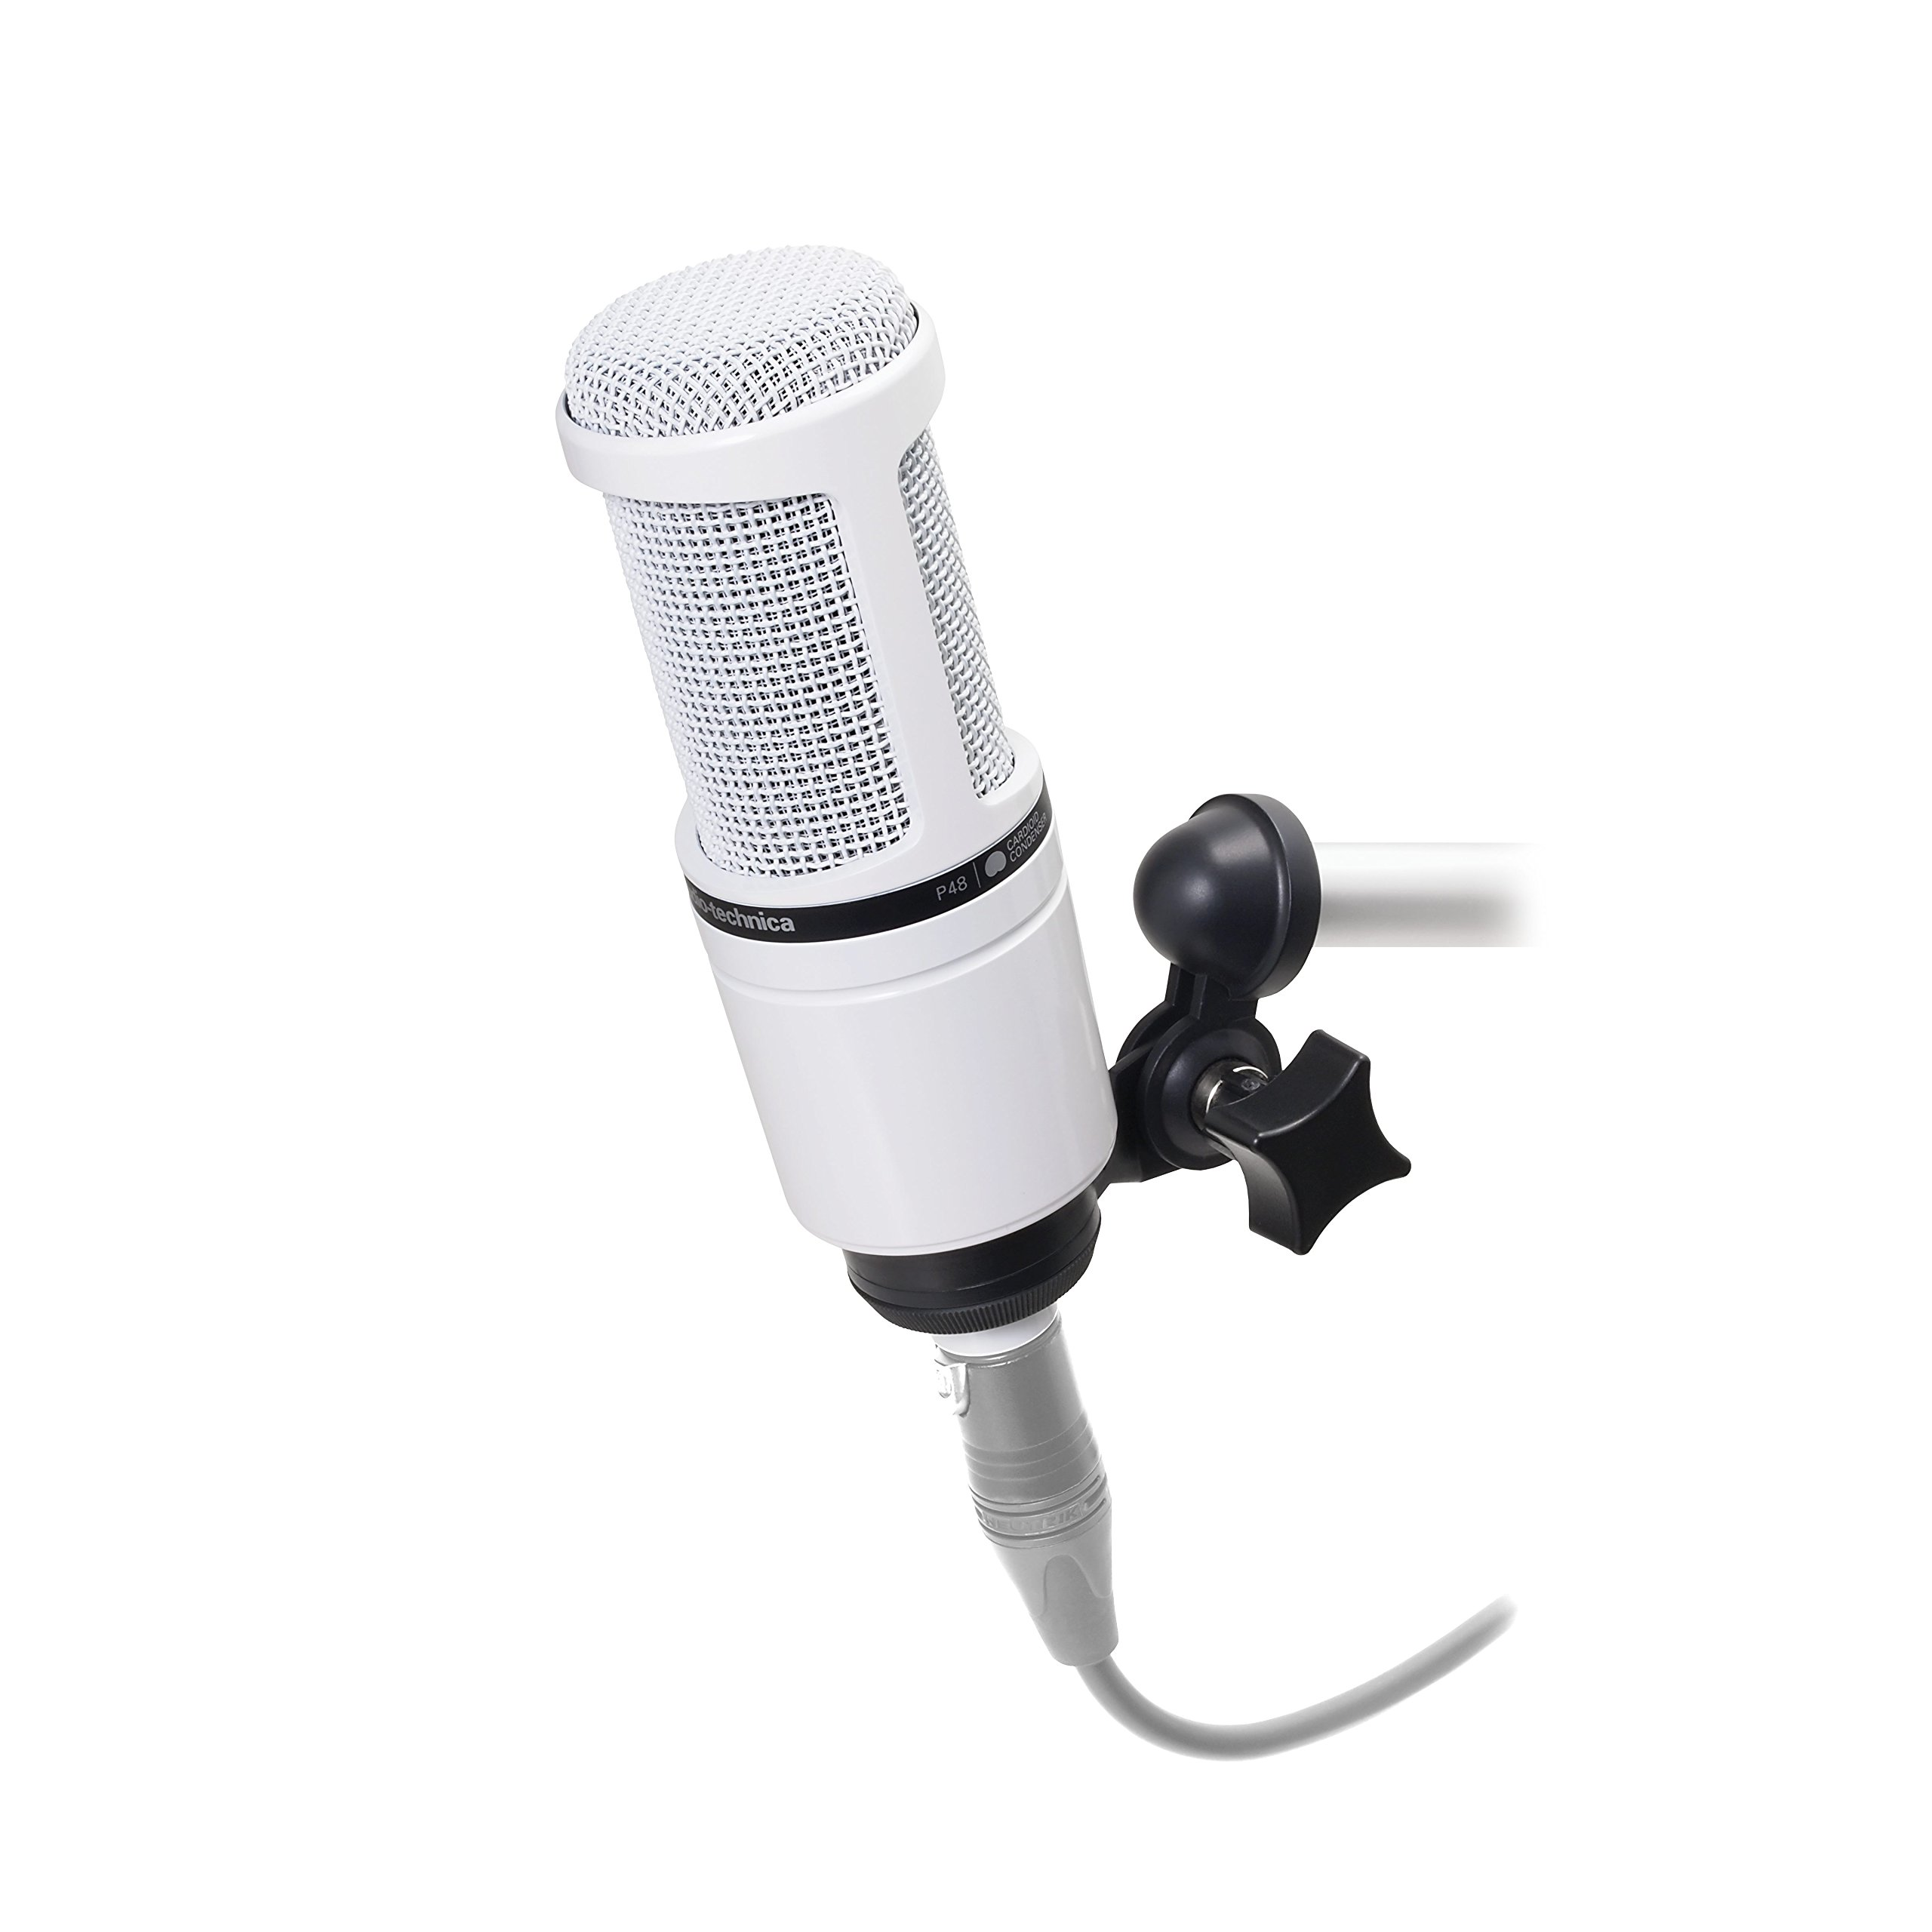 Audio-Technica AT2020 Cardioid Condenser Studio Microphone, White